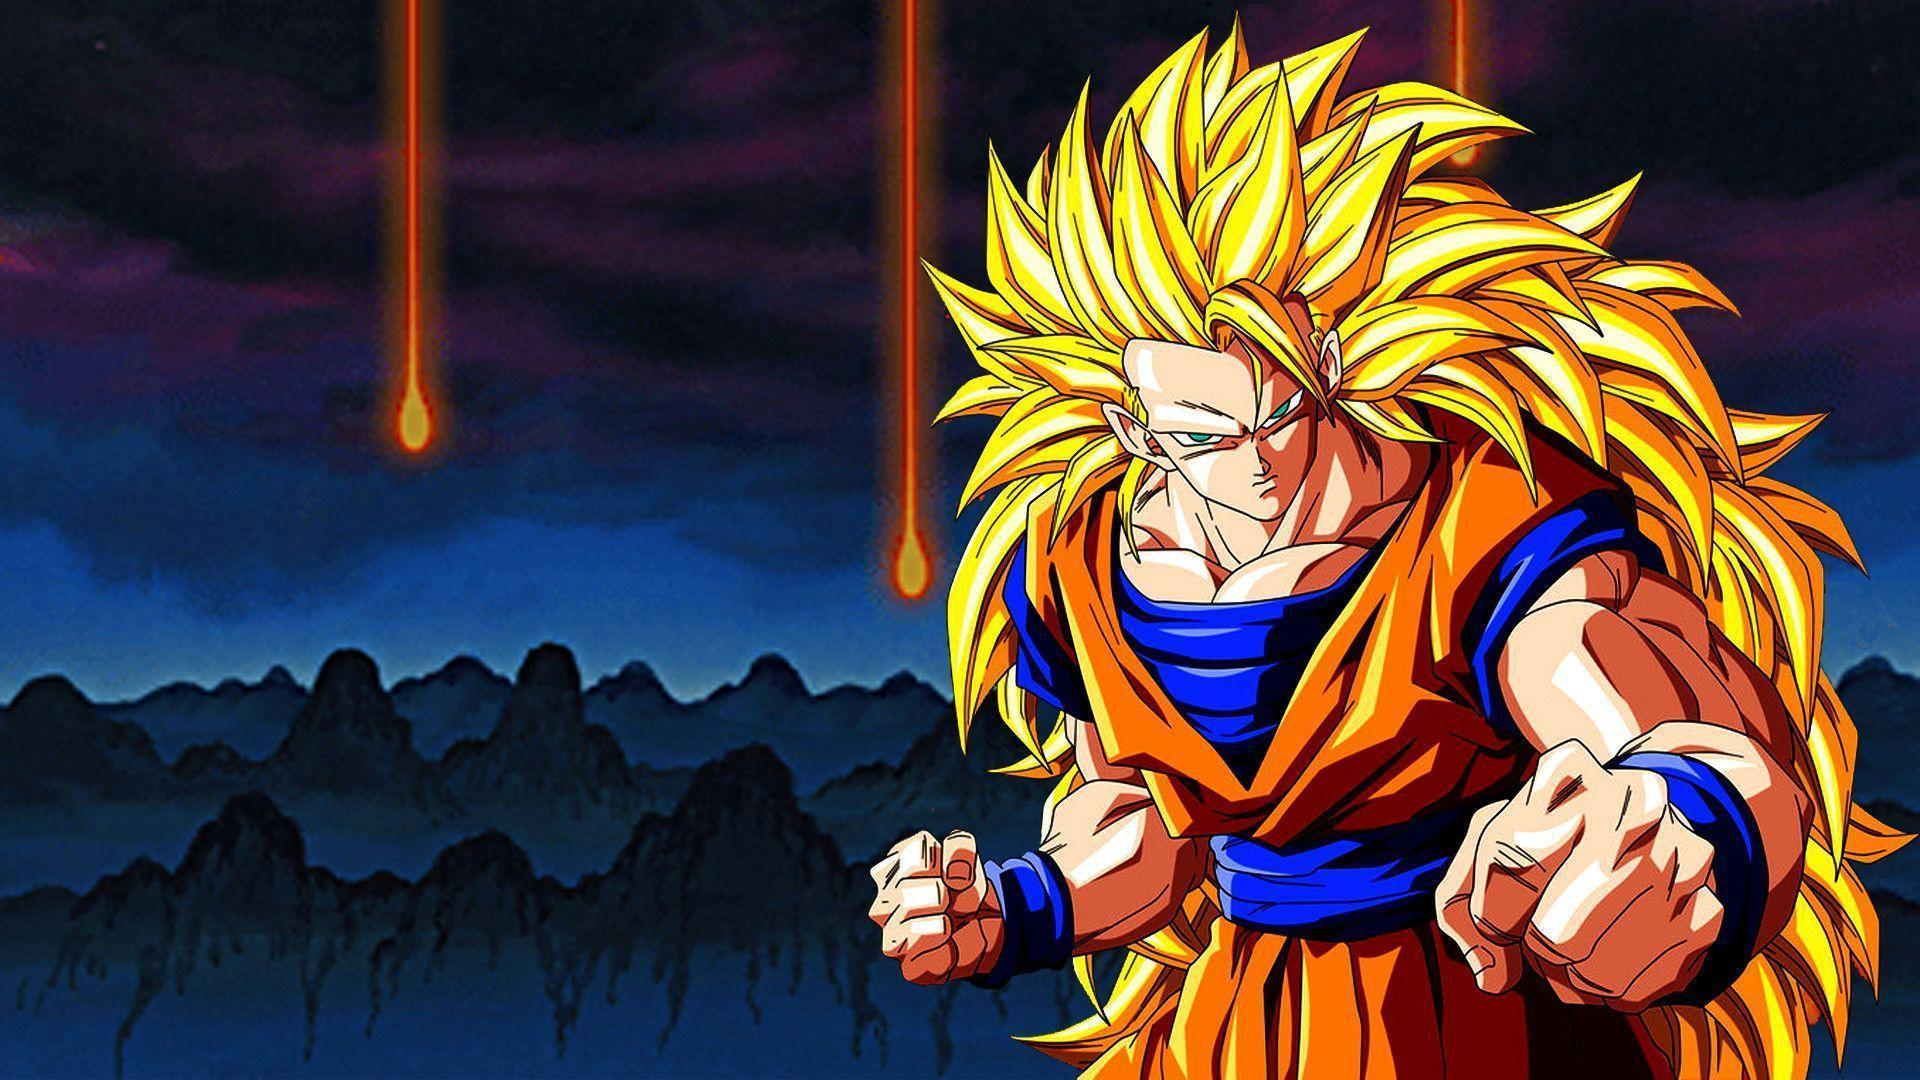 Dragon Ball Z Goku Wallpapers Top Free Dragon Ball Z Goku Backgrounds Wallpaperaccess